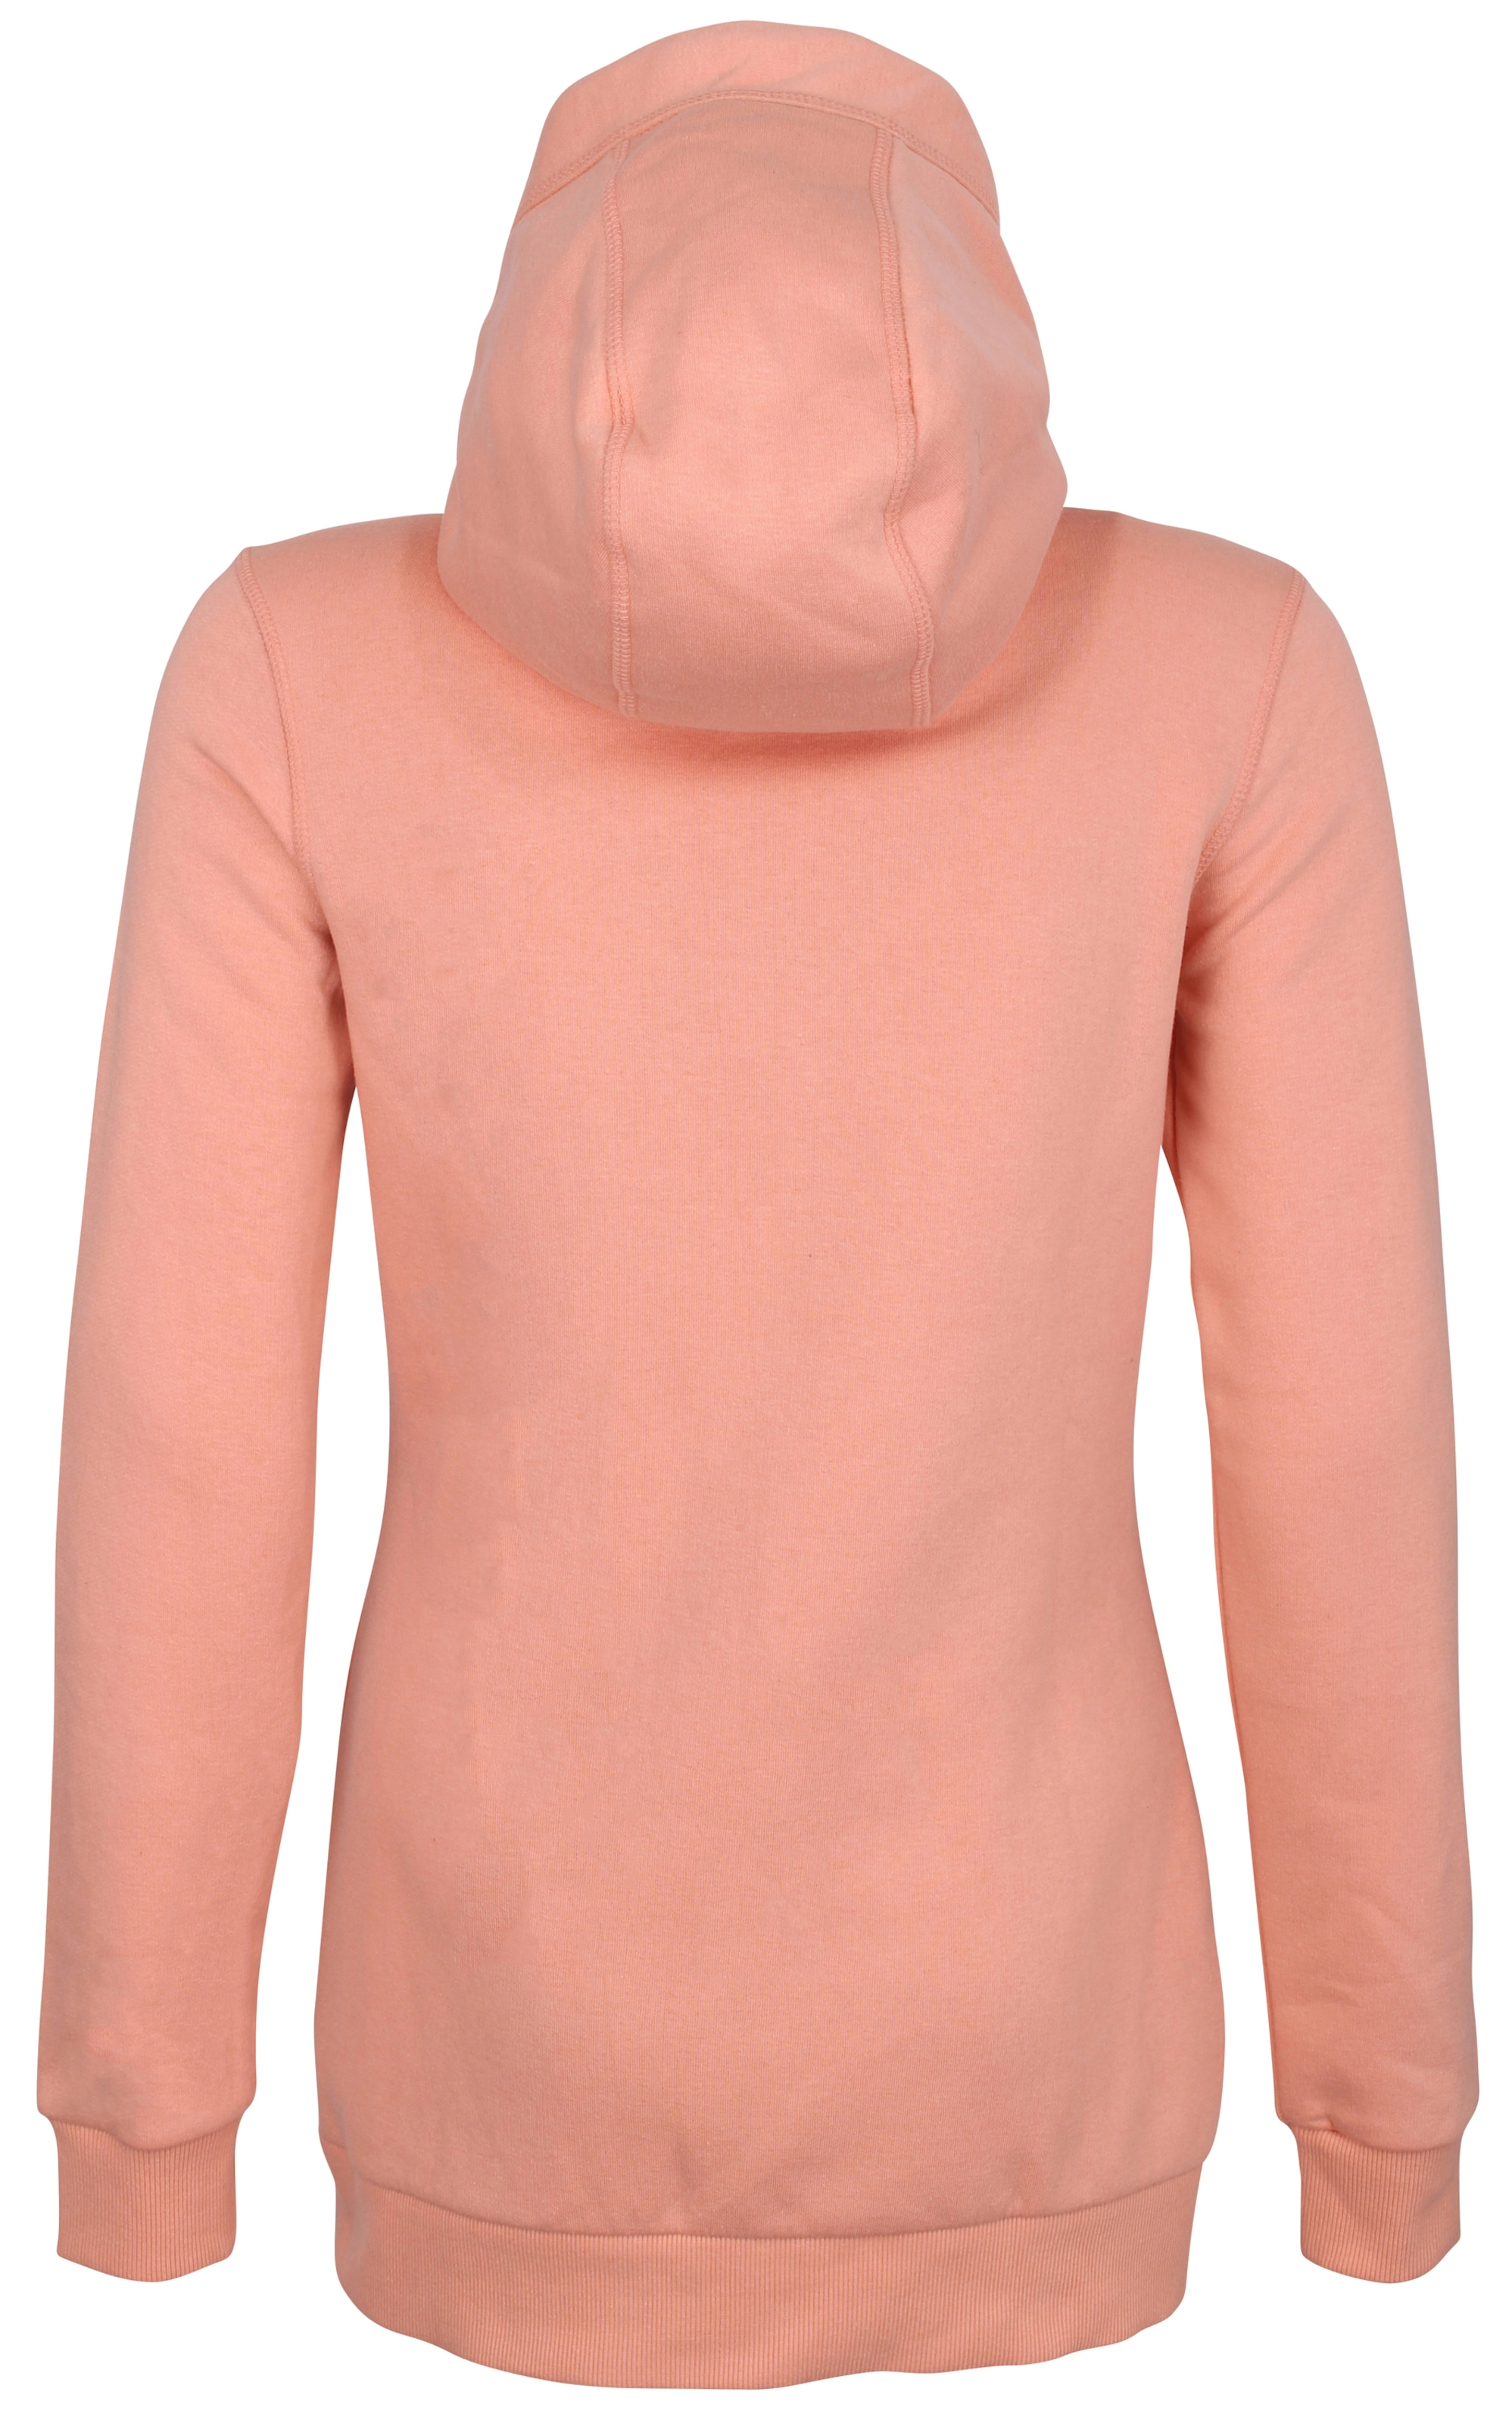 Sweatjacke Mymo Orange Orange Mymo In In Mymo Sweatjacke SUGqMpzV